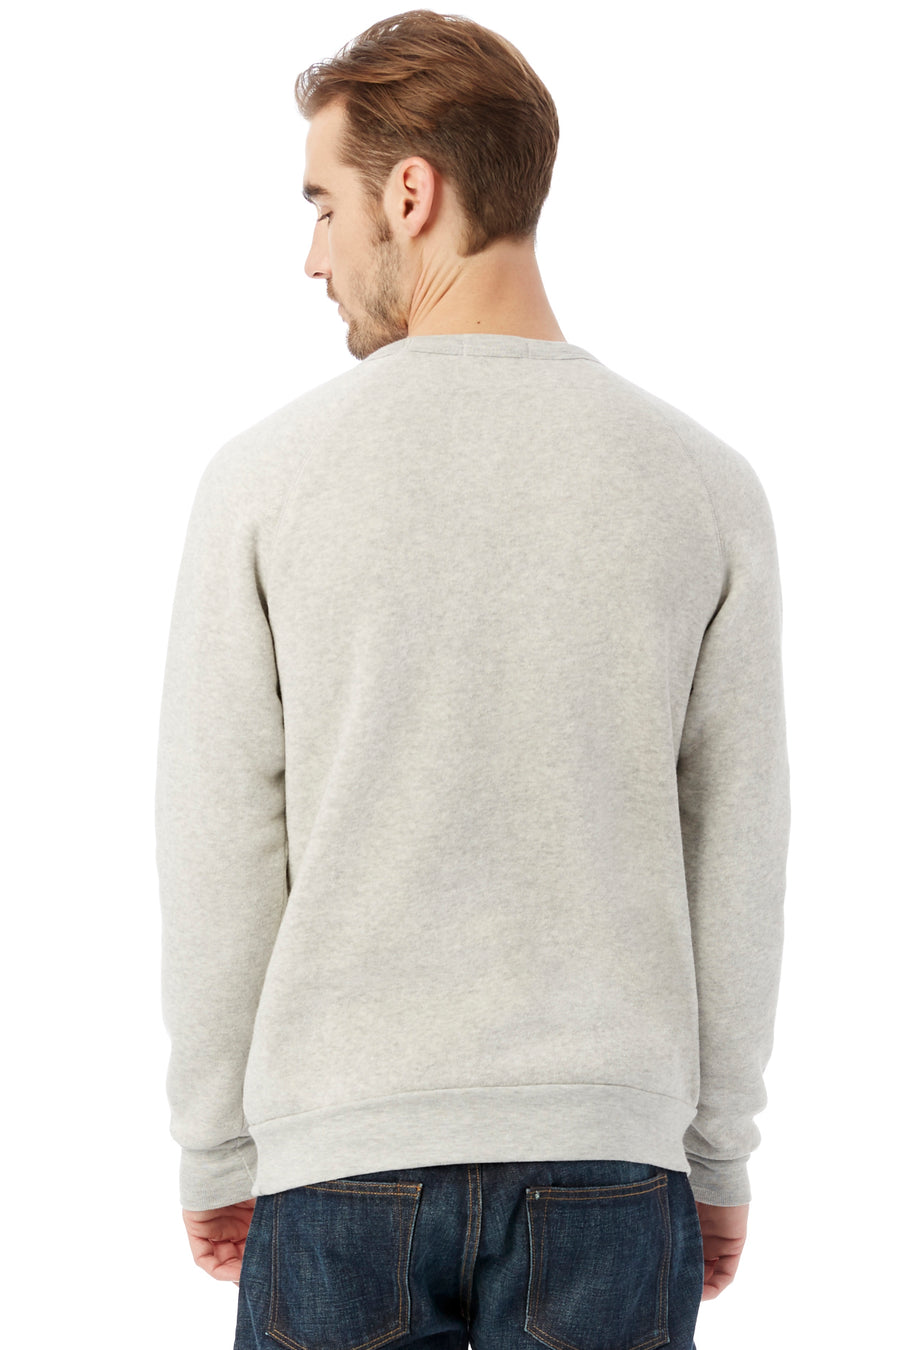 Champ Eco-Fleece Sweatshirt - Eco Light Grey - Pavilion